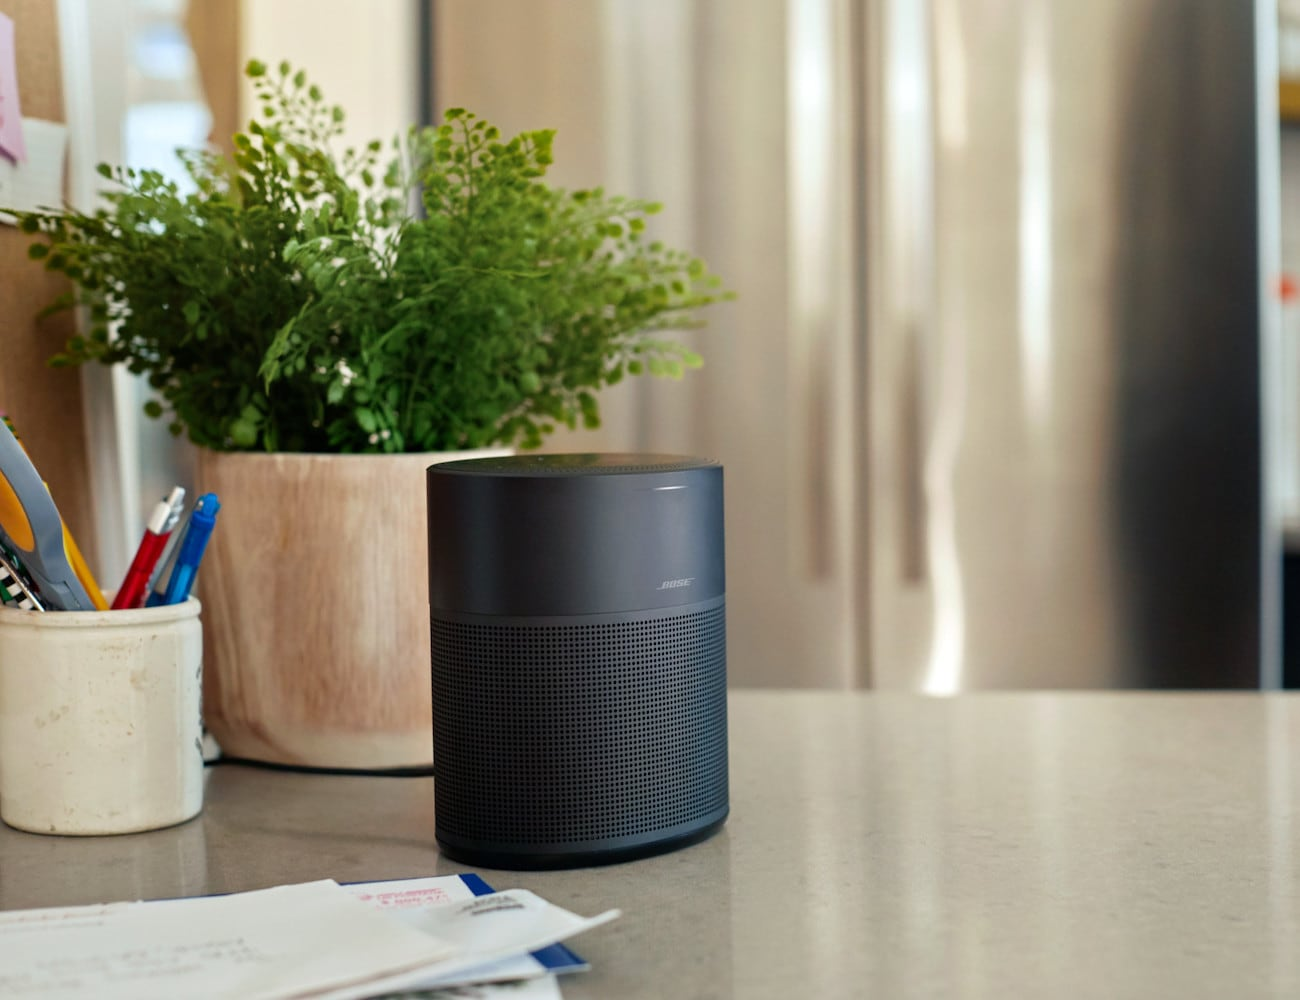 Bose Home Speaker 300 Small Smart Speaker provides 360° sound from just 6″ high